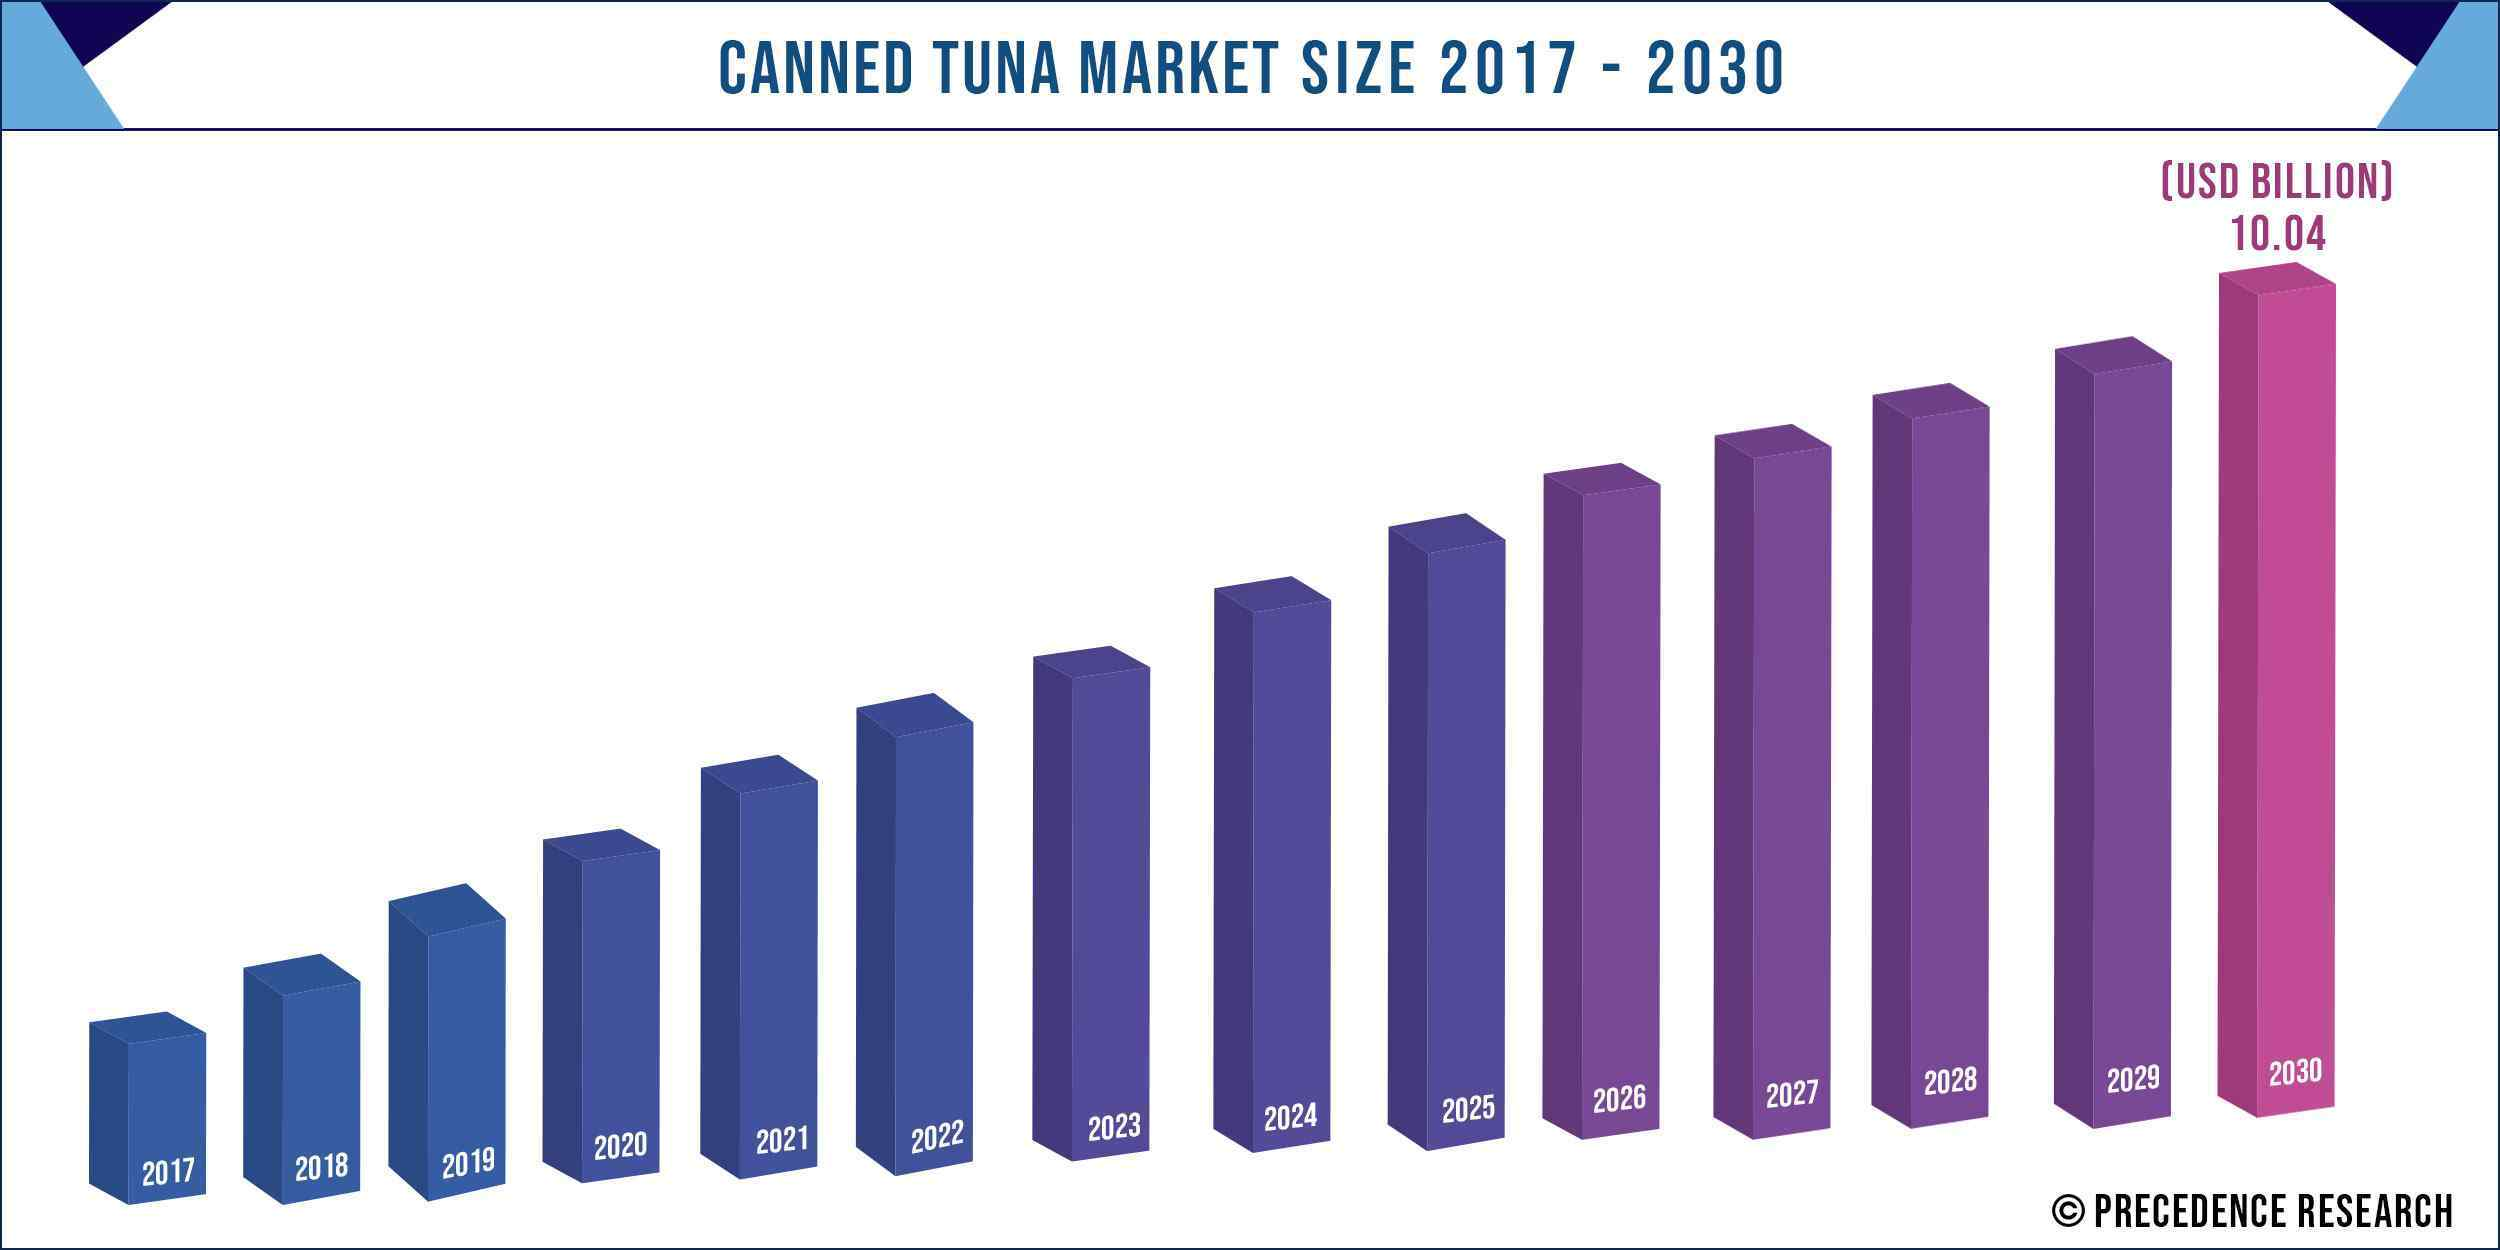 Canned Tuna Market Size 2017-2030